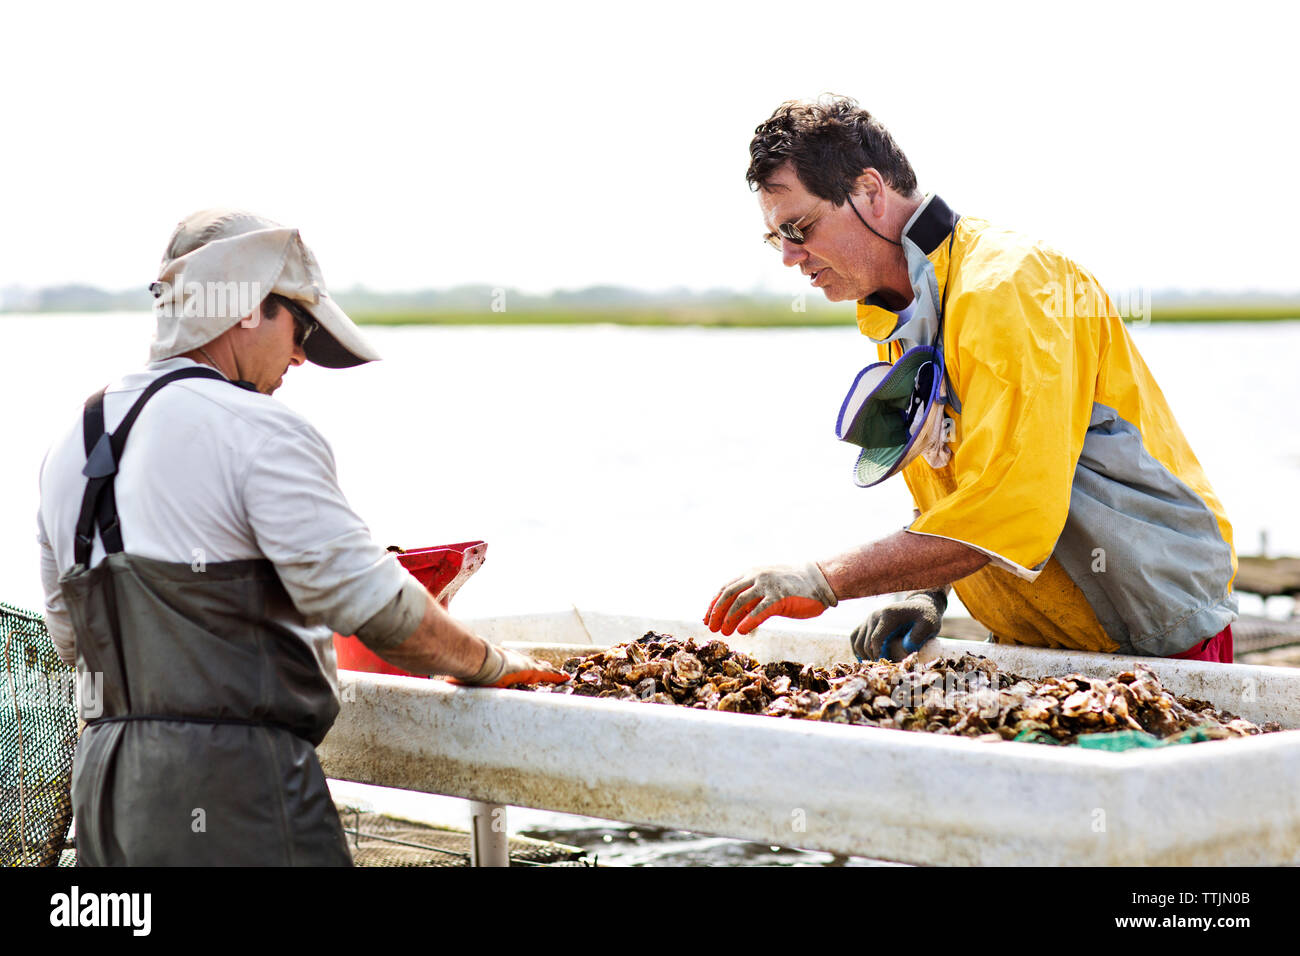 Workers working at fishing industry Stock Photo